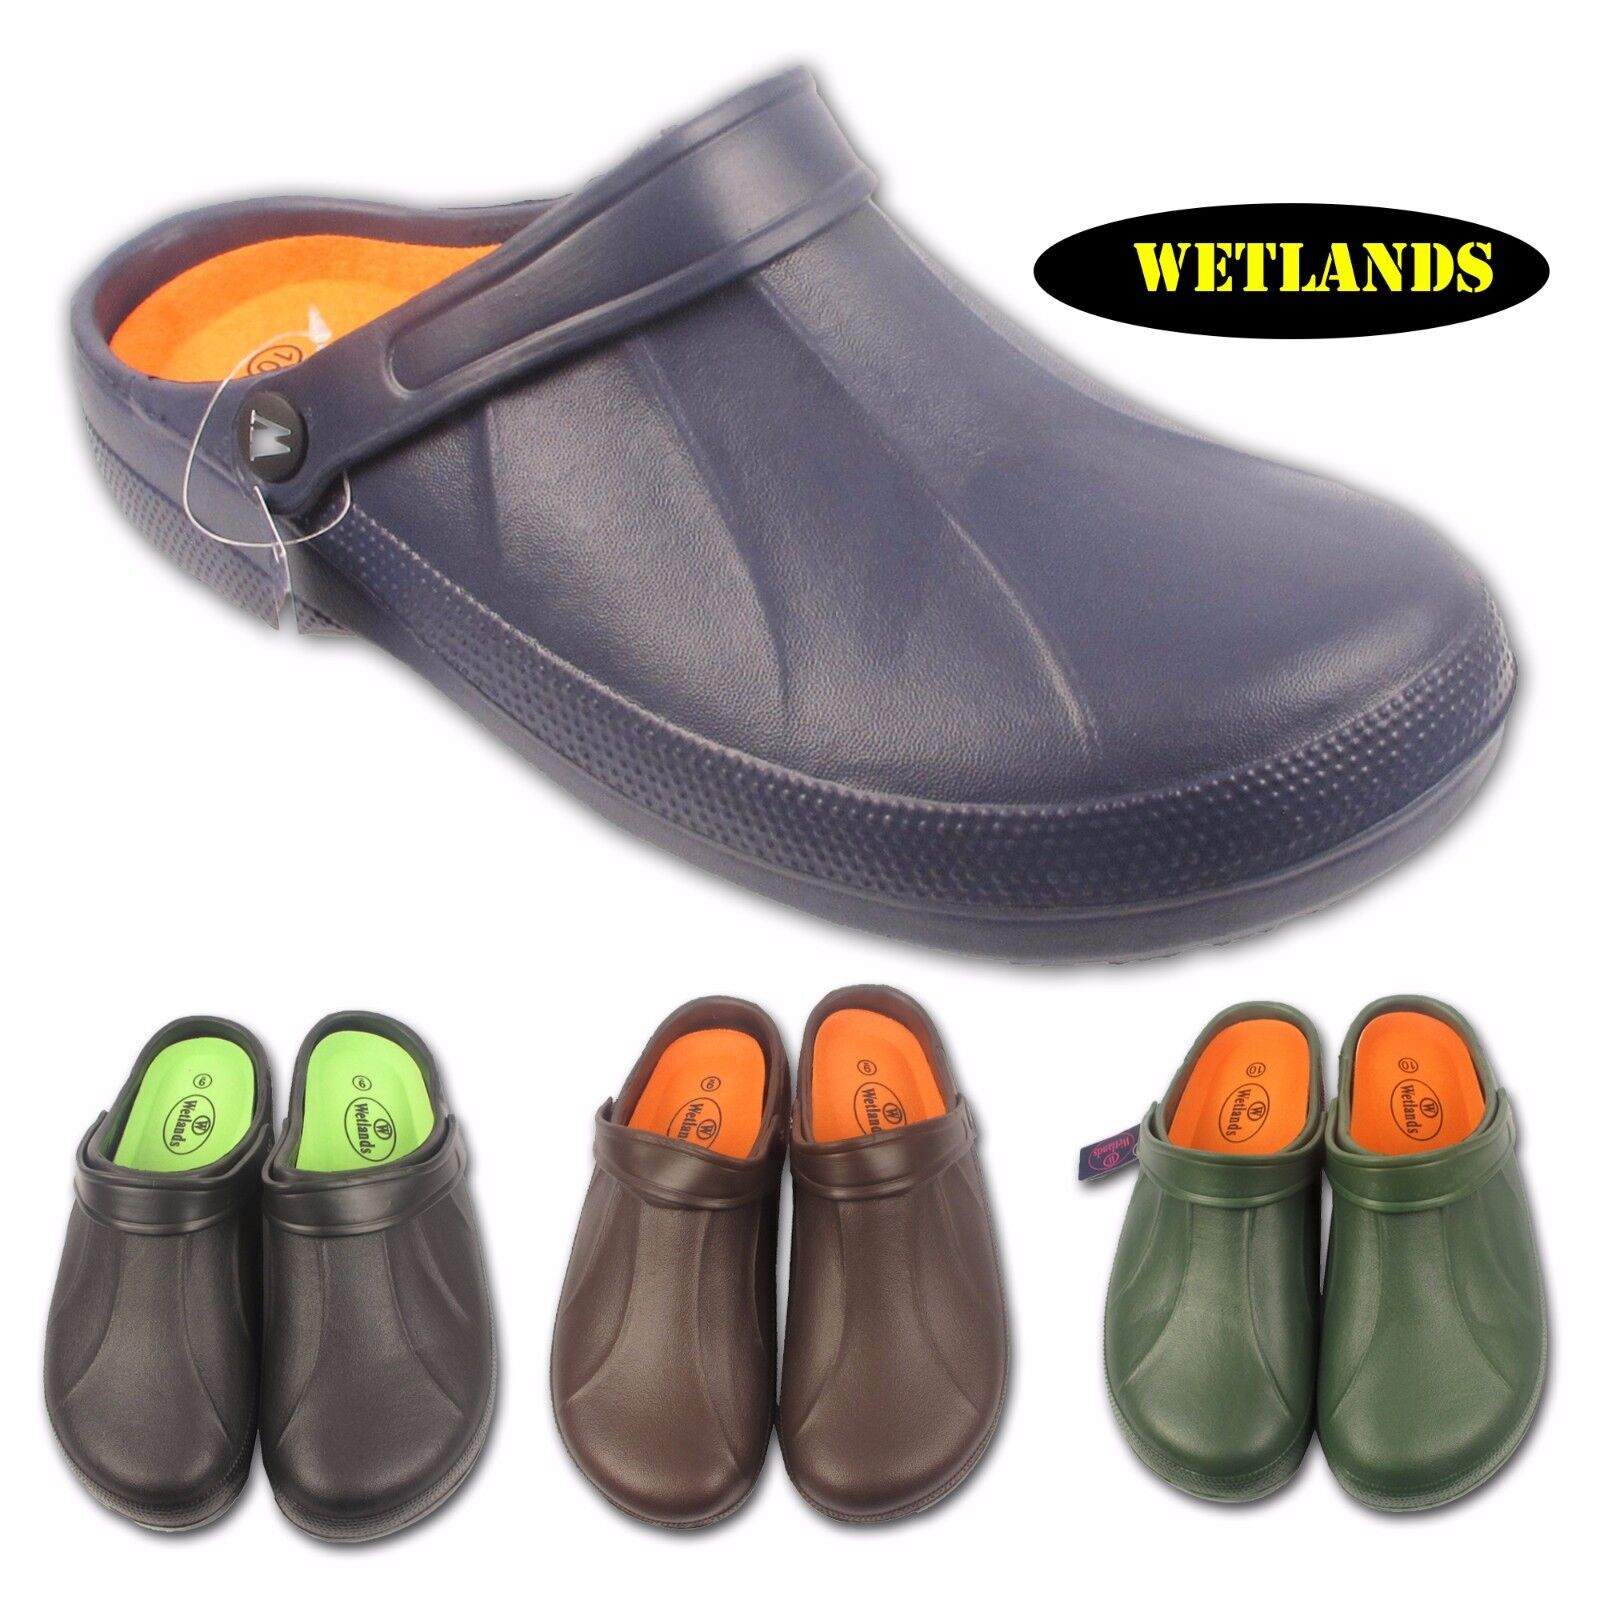 Men's/Women's trade MENS GARDEN HOSPITAL BEACH CLOGS  sell Wholesale trade Men's/Women's At an affordable price 280e3c